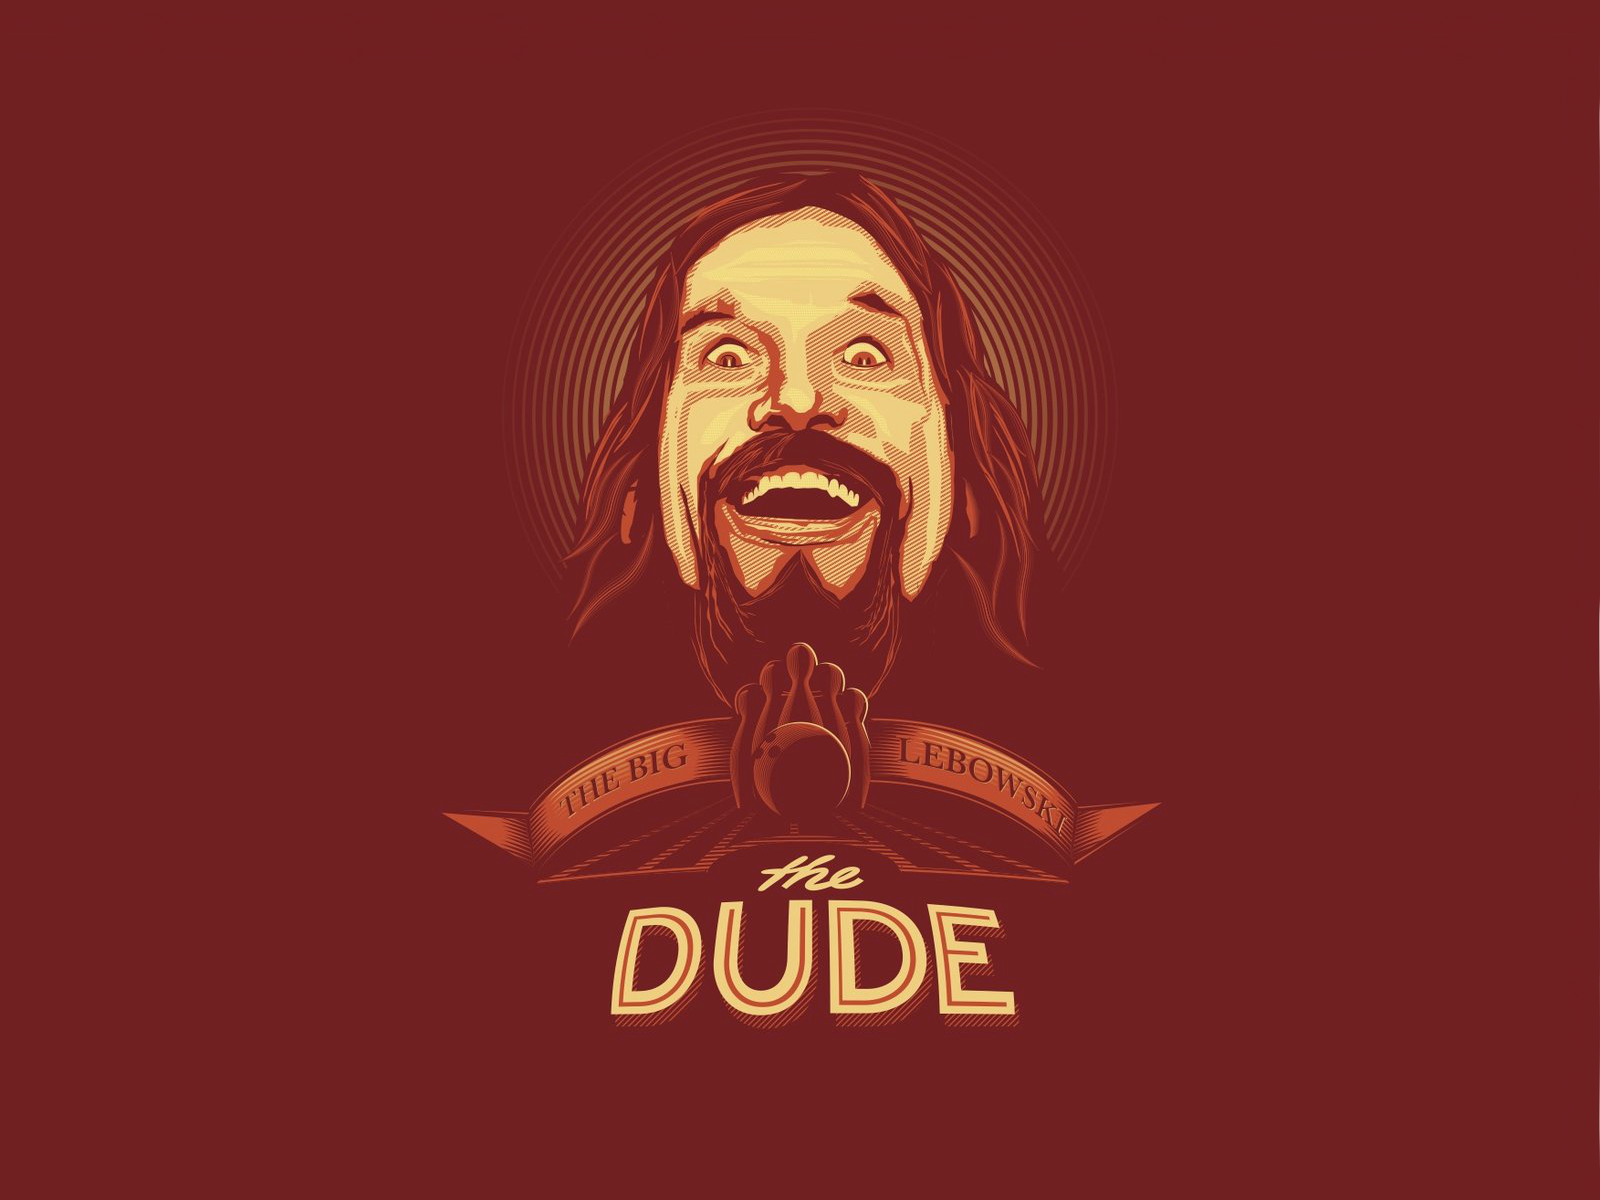 6bb8e09da9 The-Big-Lebowski-the-big-lebowski-30869205-1600-